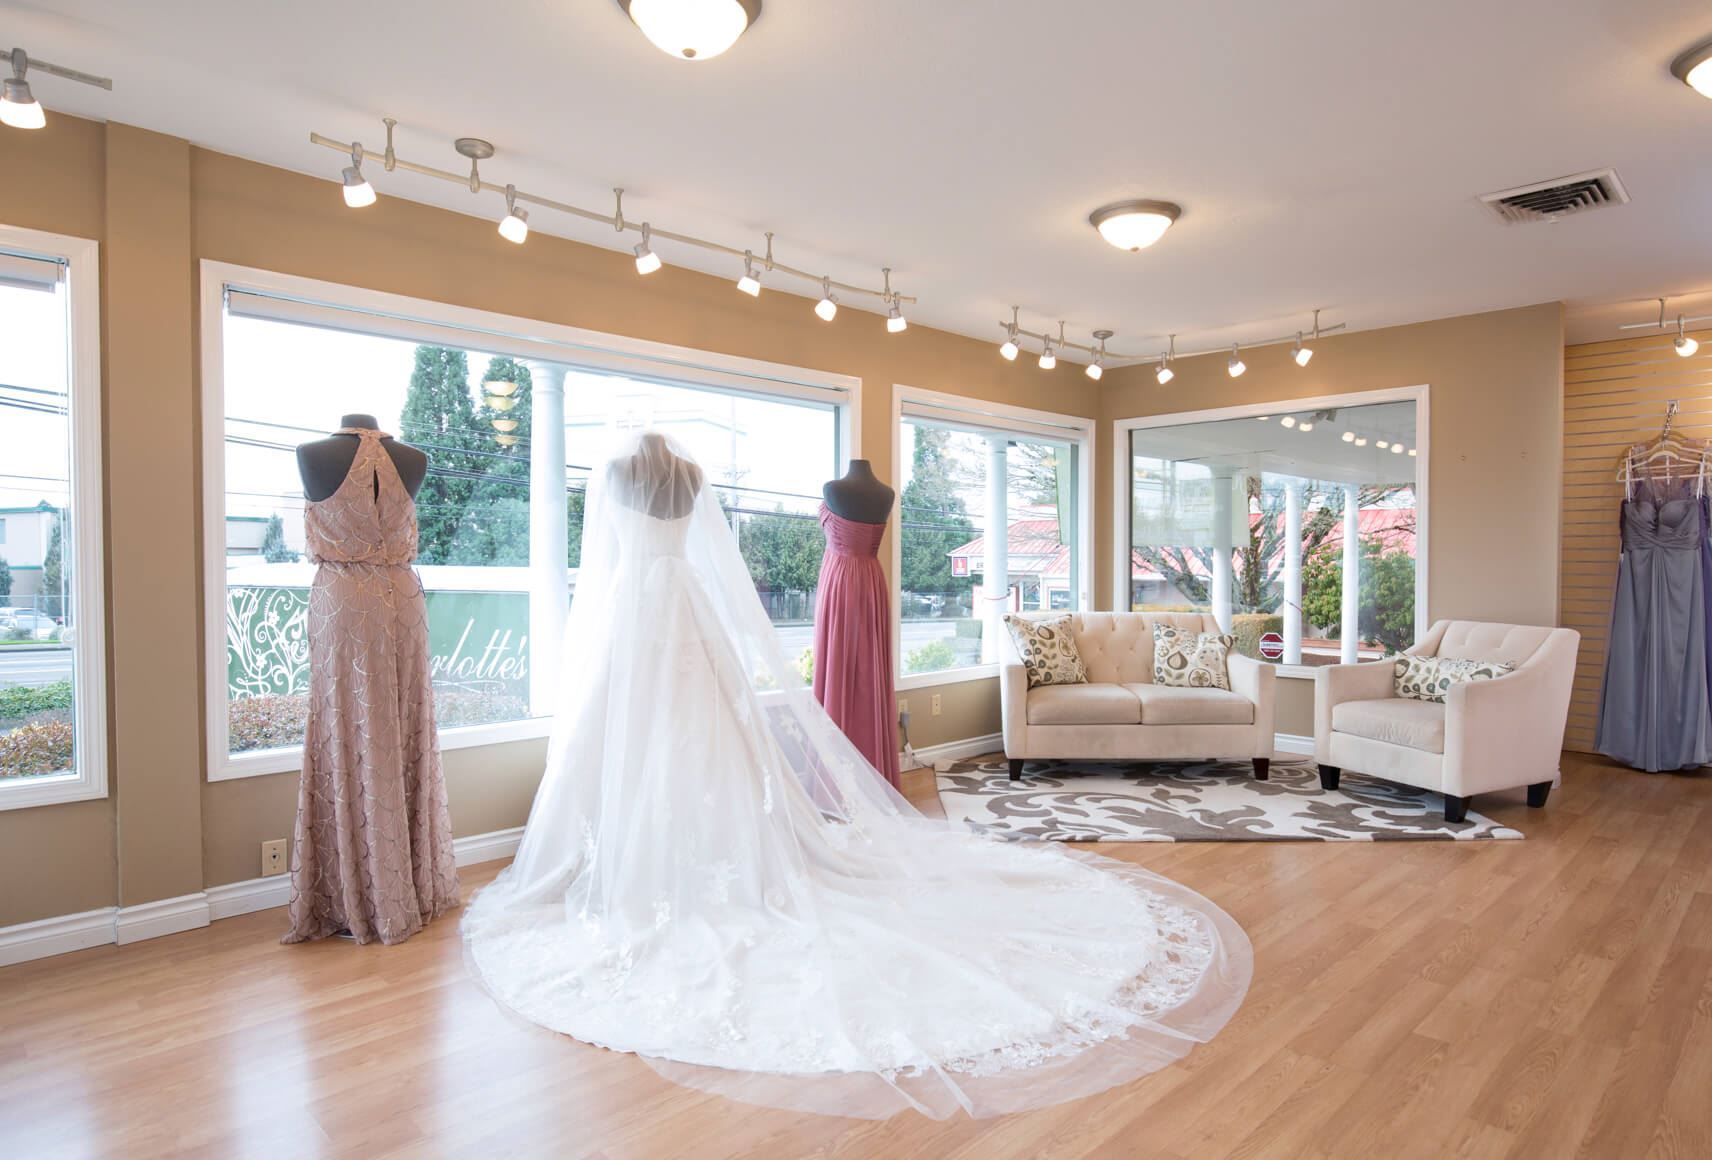 DO I NEED TO MAKE AN APPOINTMENT TO TRY ON WEDDING GOWNS?